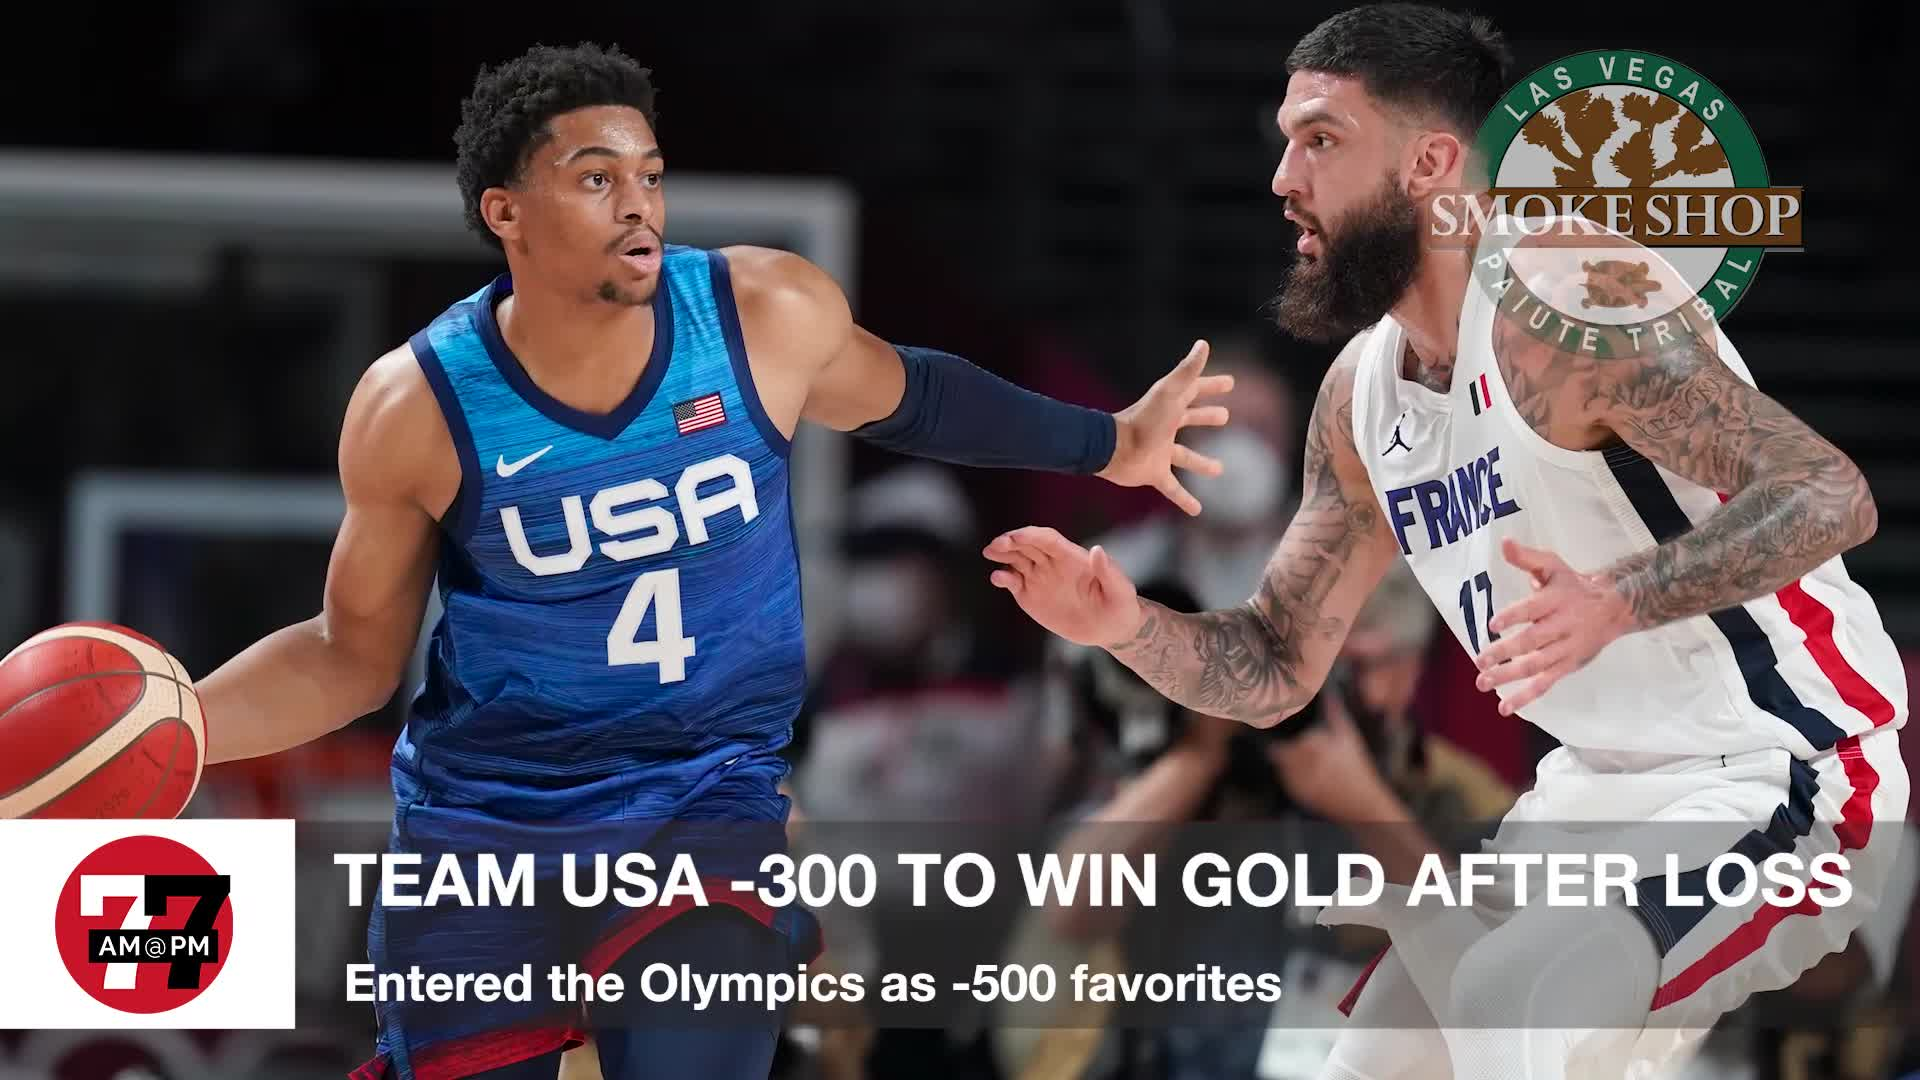 7@7PM Team USA -300 to Win Gold After Loss